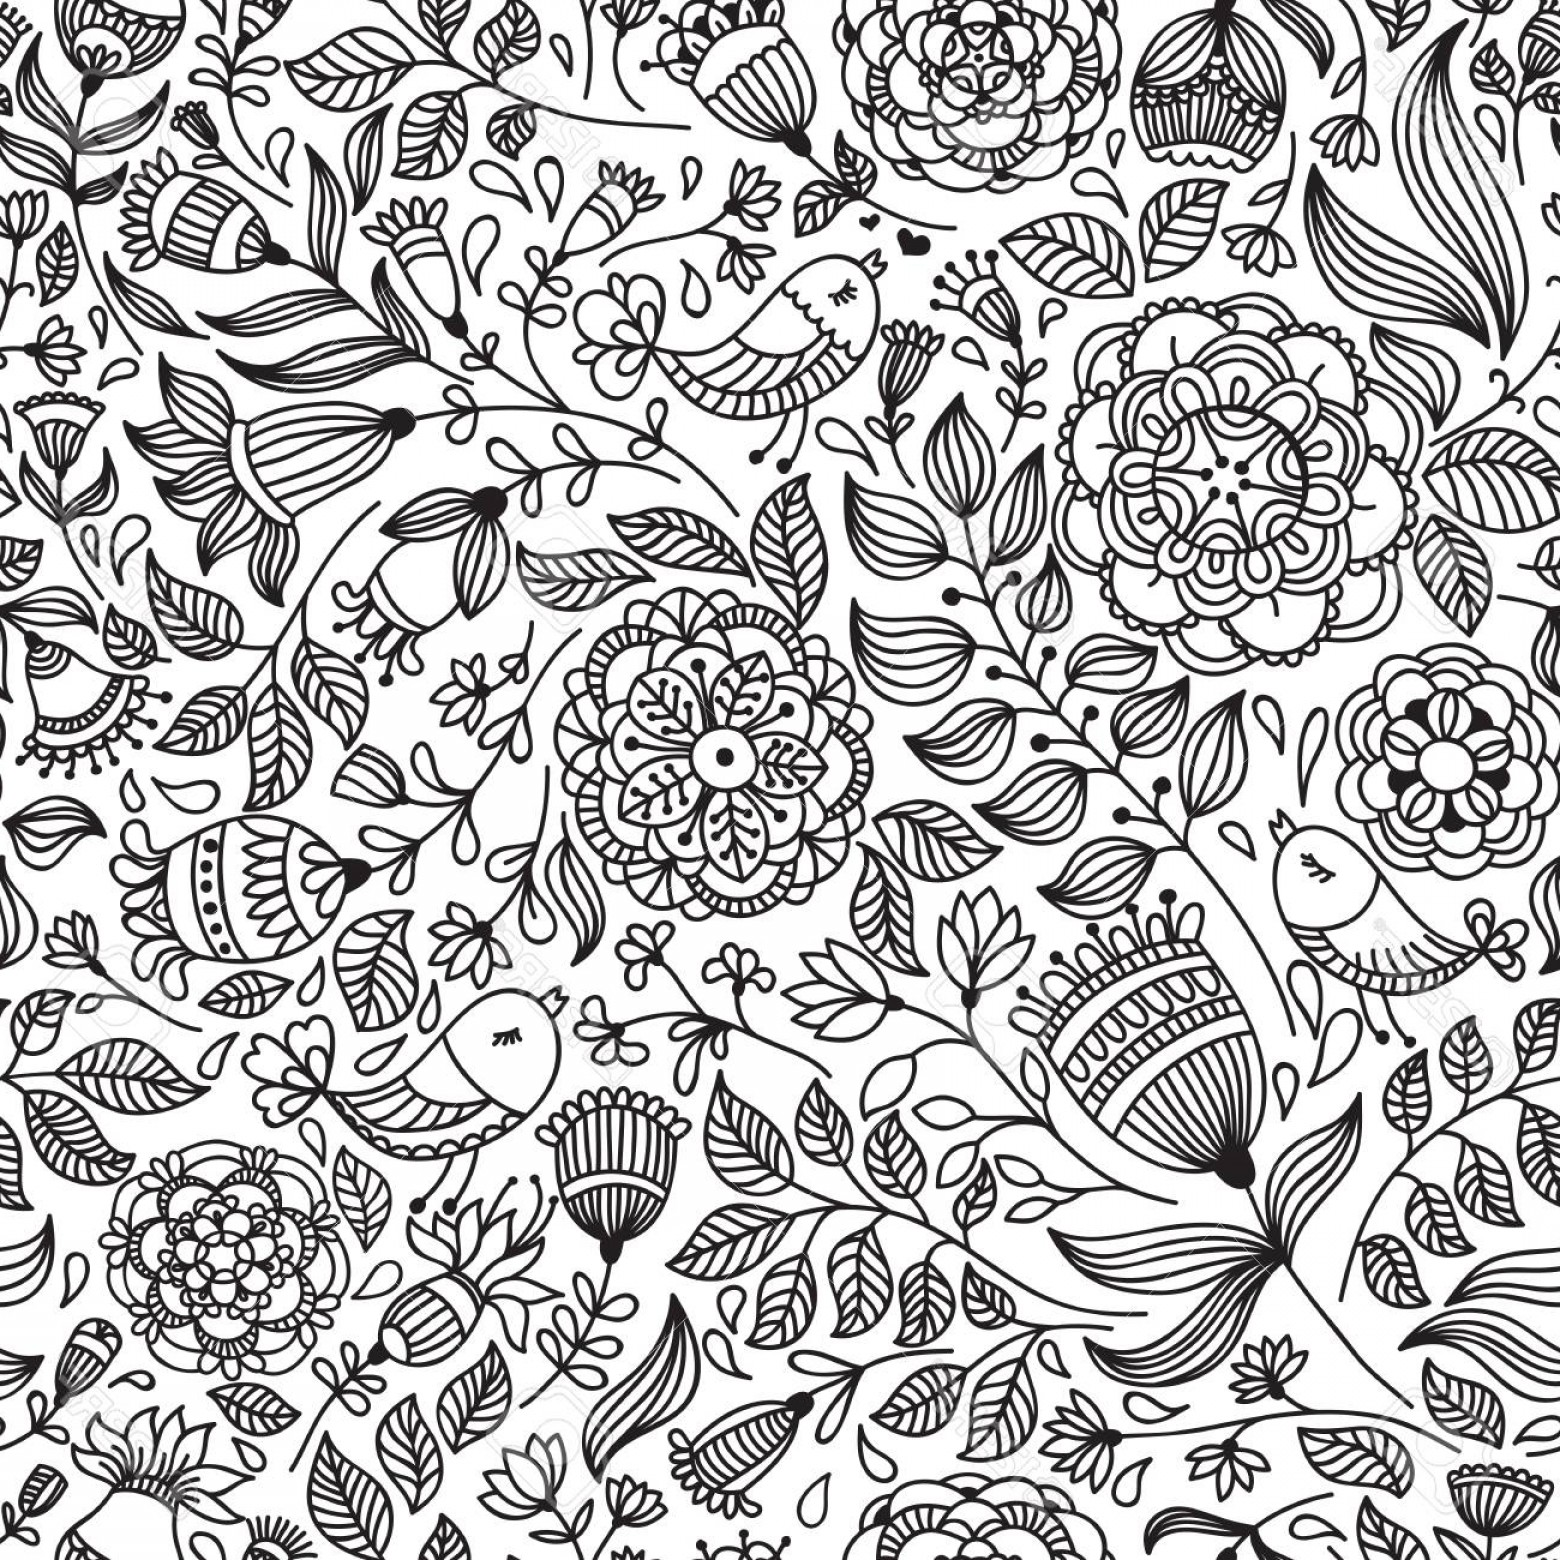 Free Vintage Vector Desktop Wallpaper: Photostock Vector Vector Seamless Vintage Pattern With Flower Can Be Used For Desktop Wallpaper Or Frame For A Wall Ha